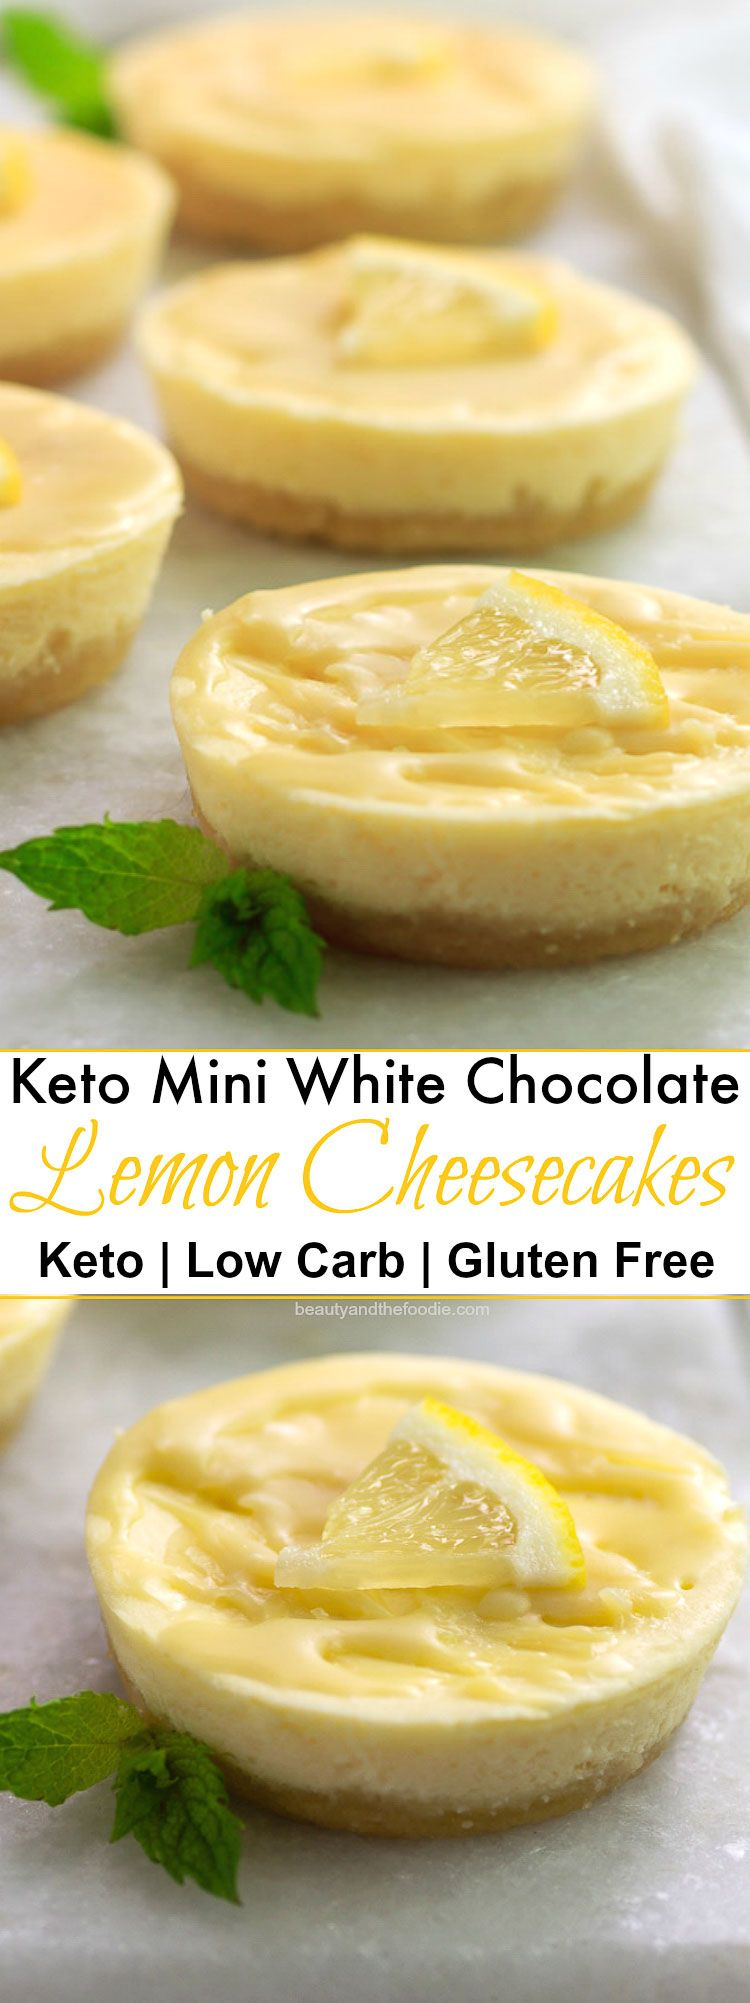 Keto White Chocolate Lemon Cheesecakes